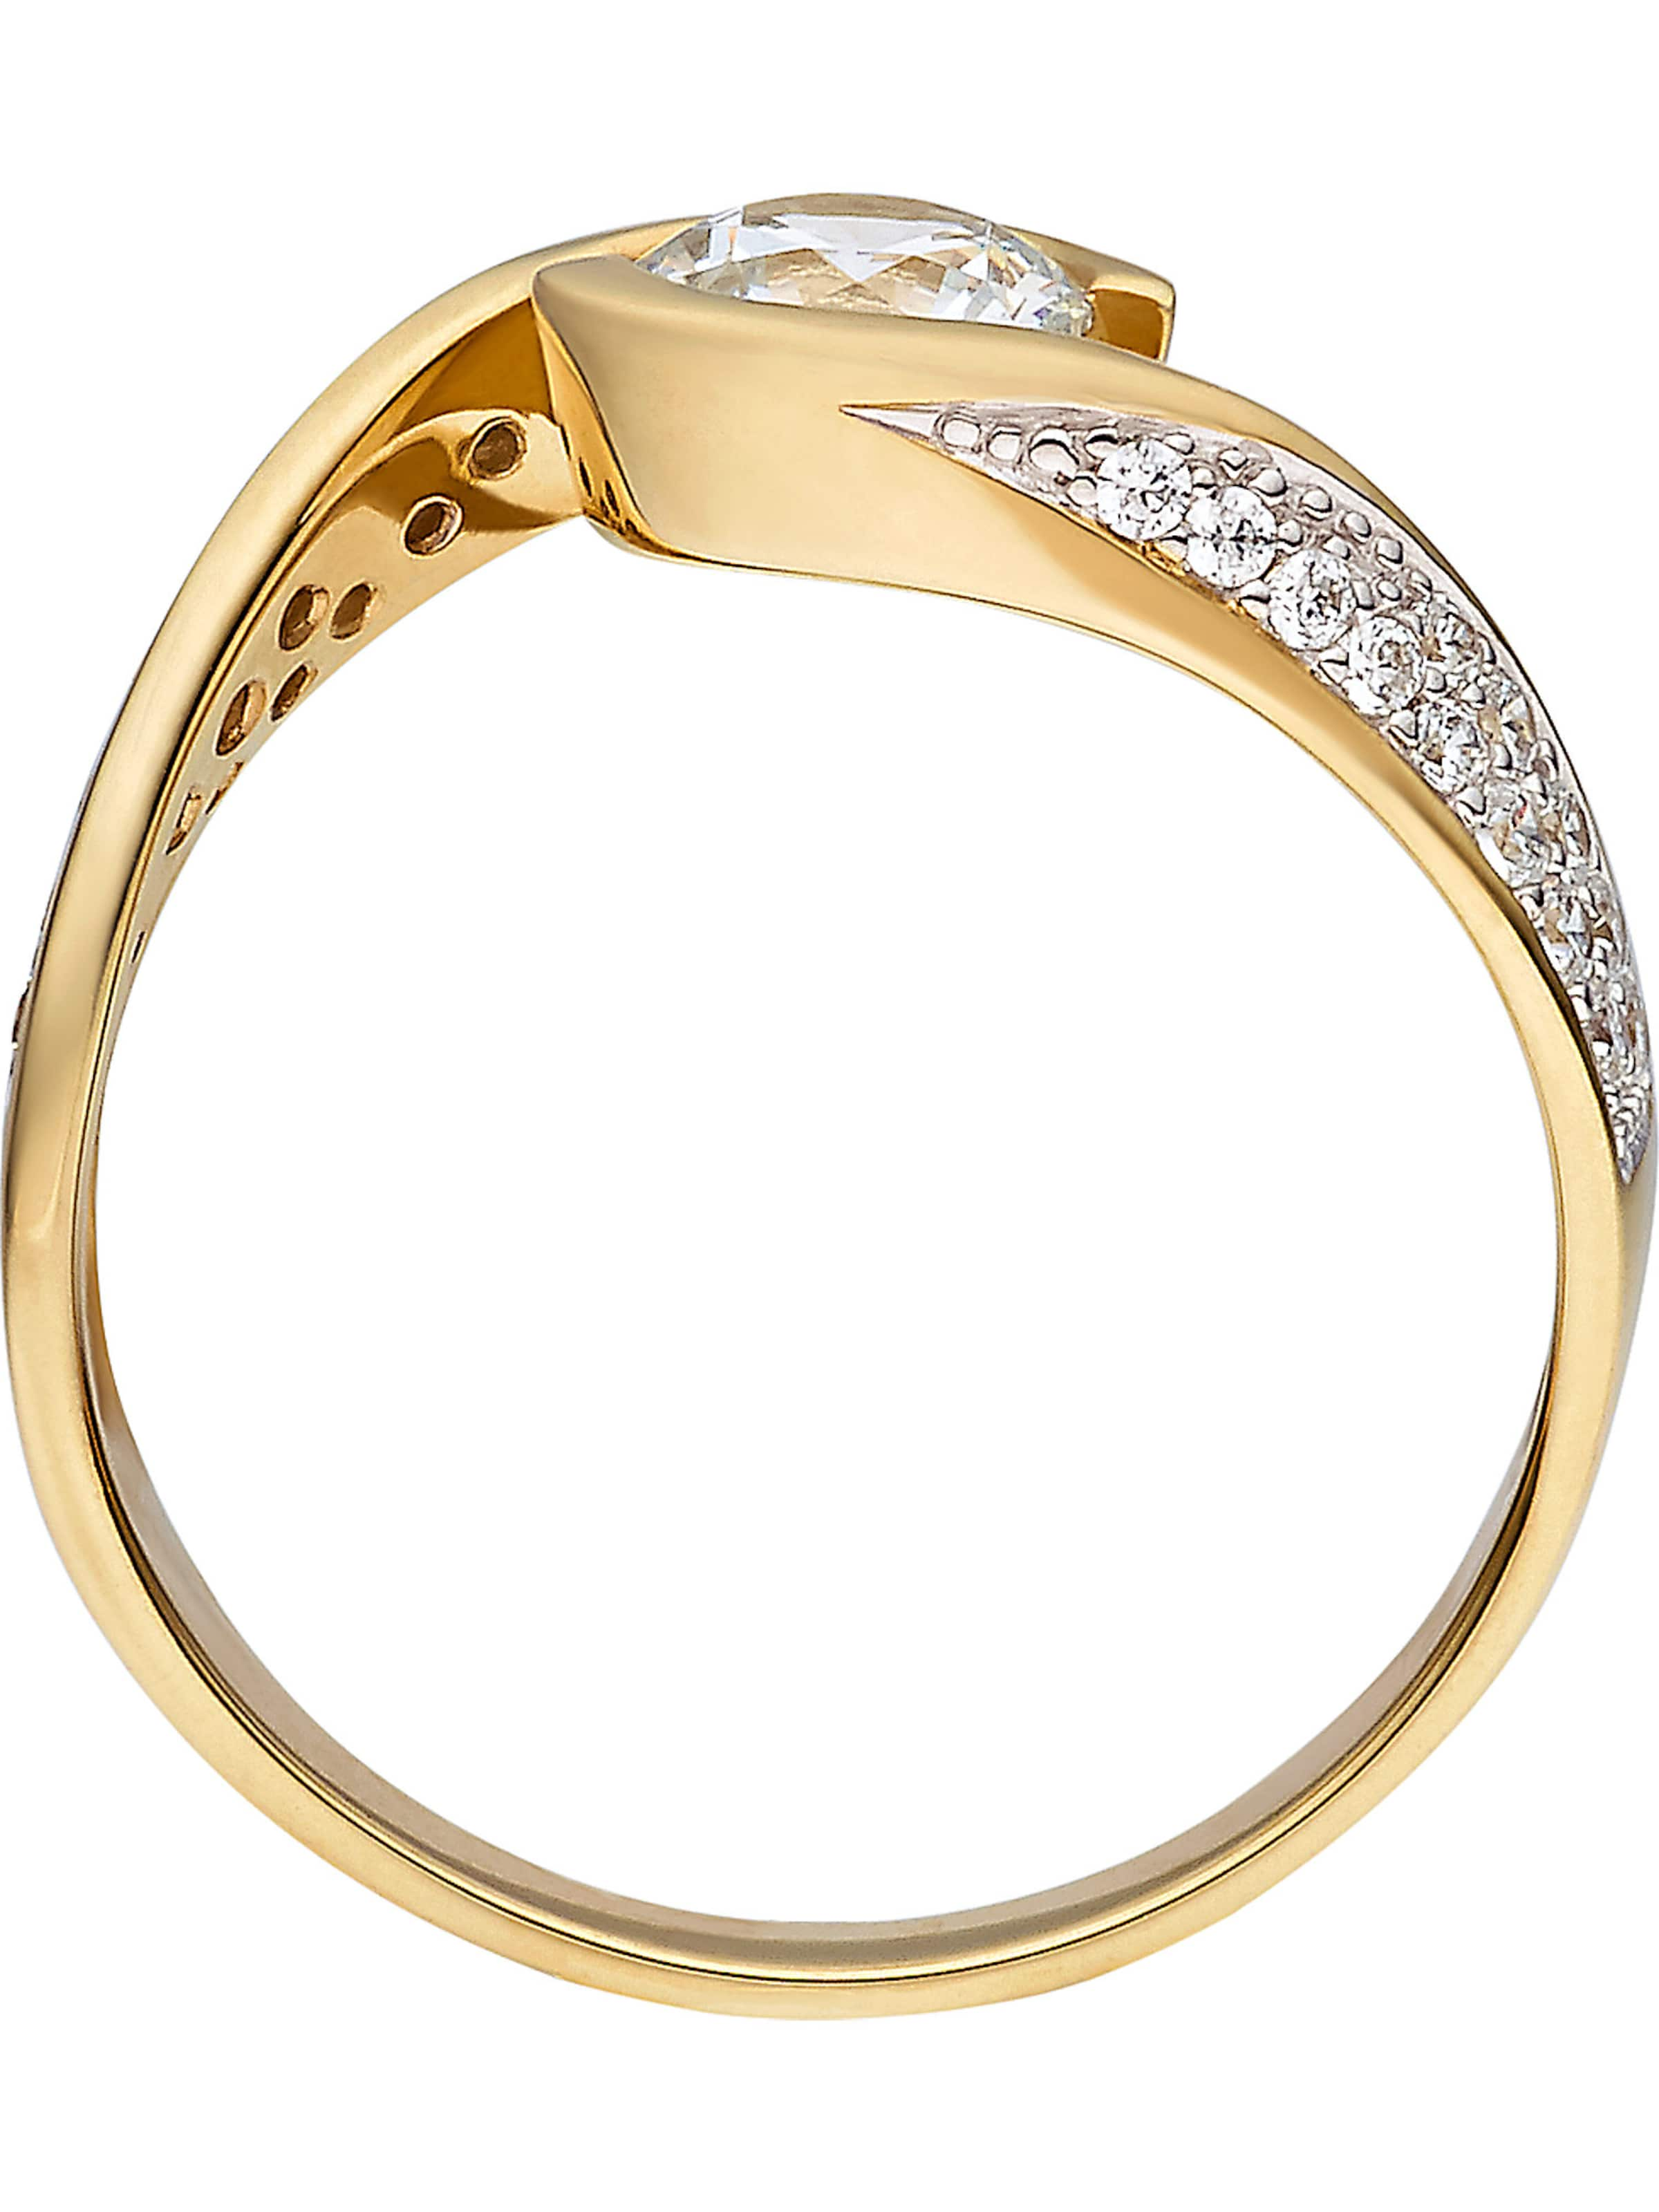 Christ Christ Christ In GoldTransparent Ring In GoldTransparent GoldTransparent Ring In Ring In Christ Ring D2E9WHI